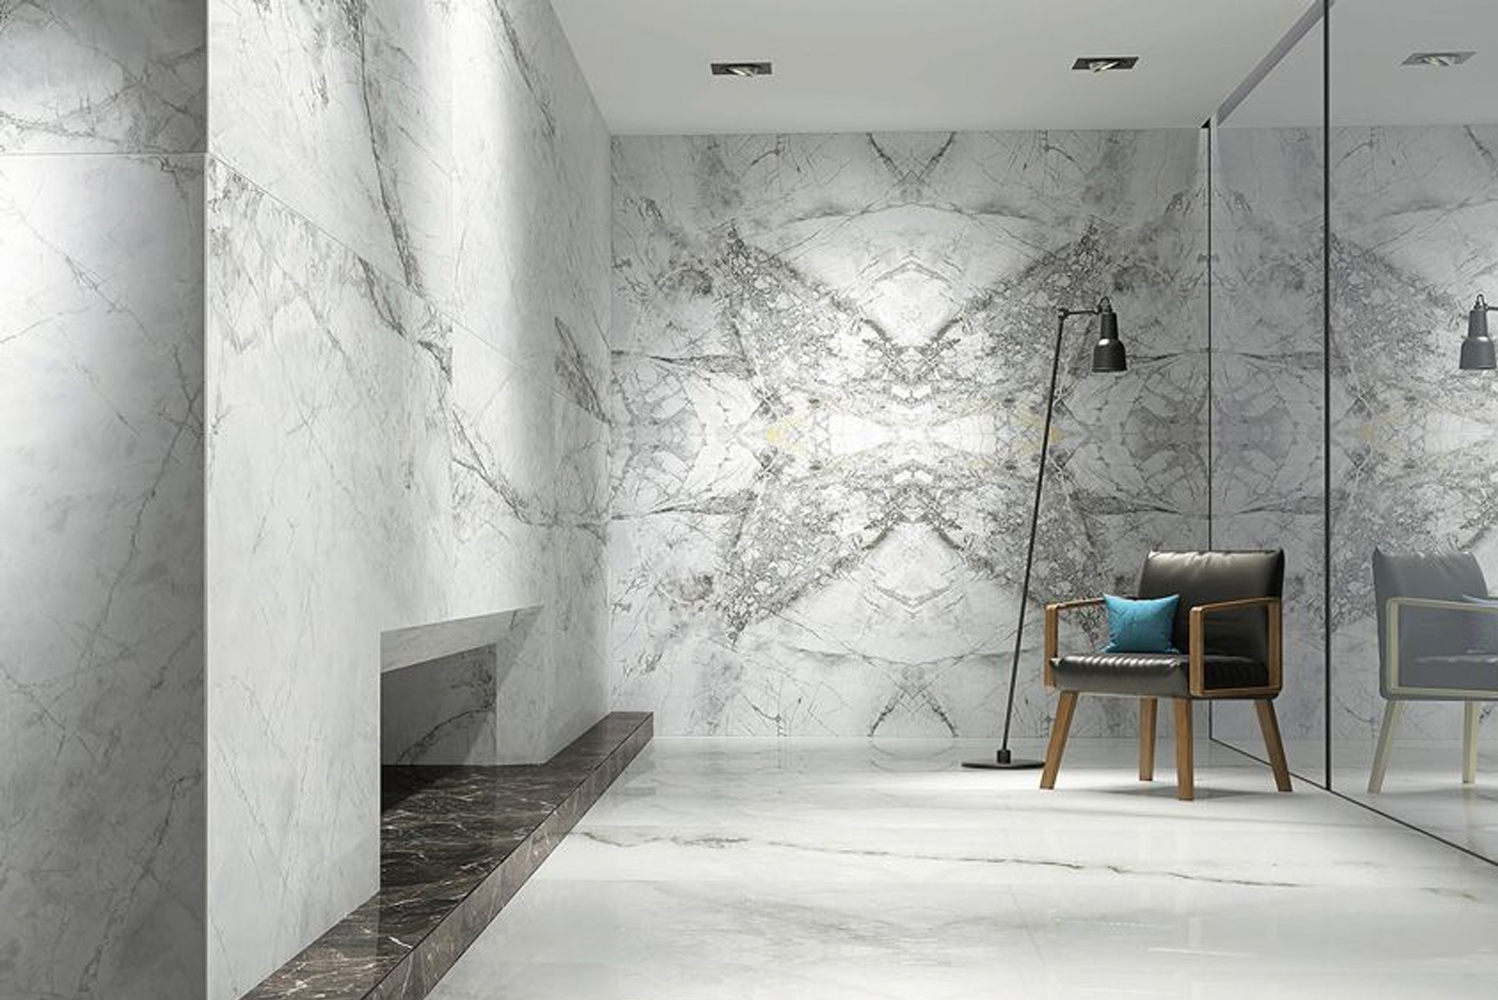 Made of porcelain, these tiles have a range of applications, from residential to commercial, floors and walls, and interior and exterior.